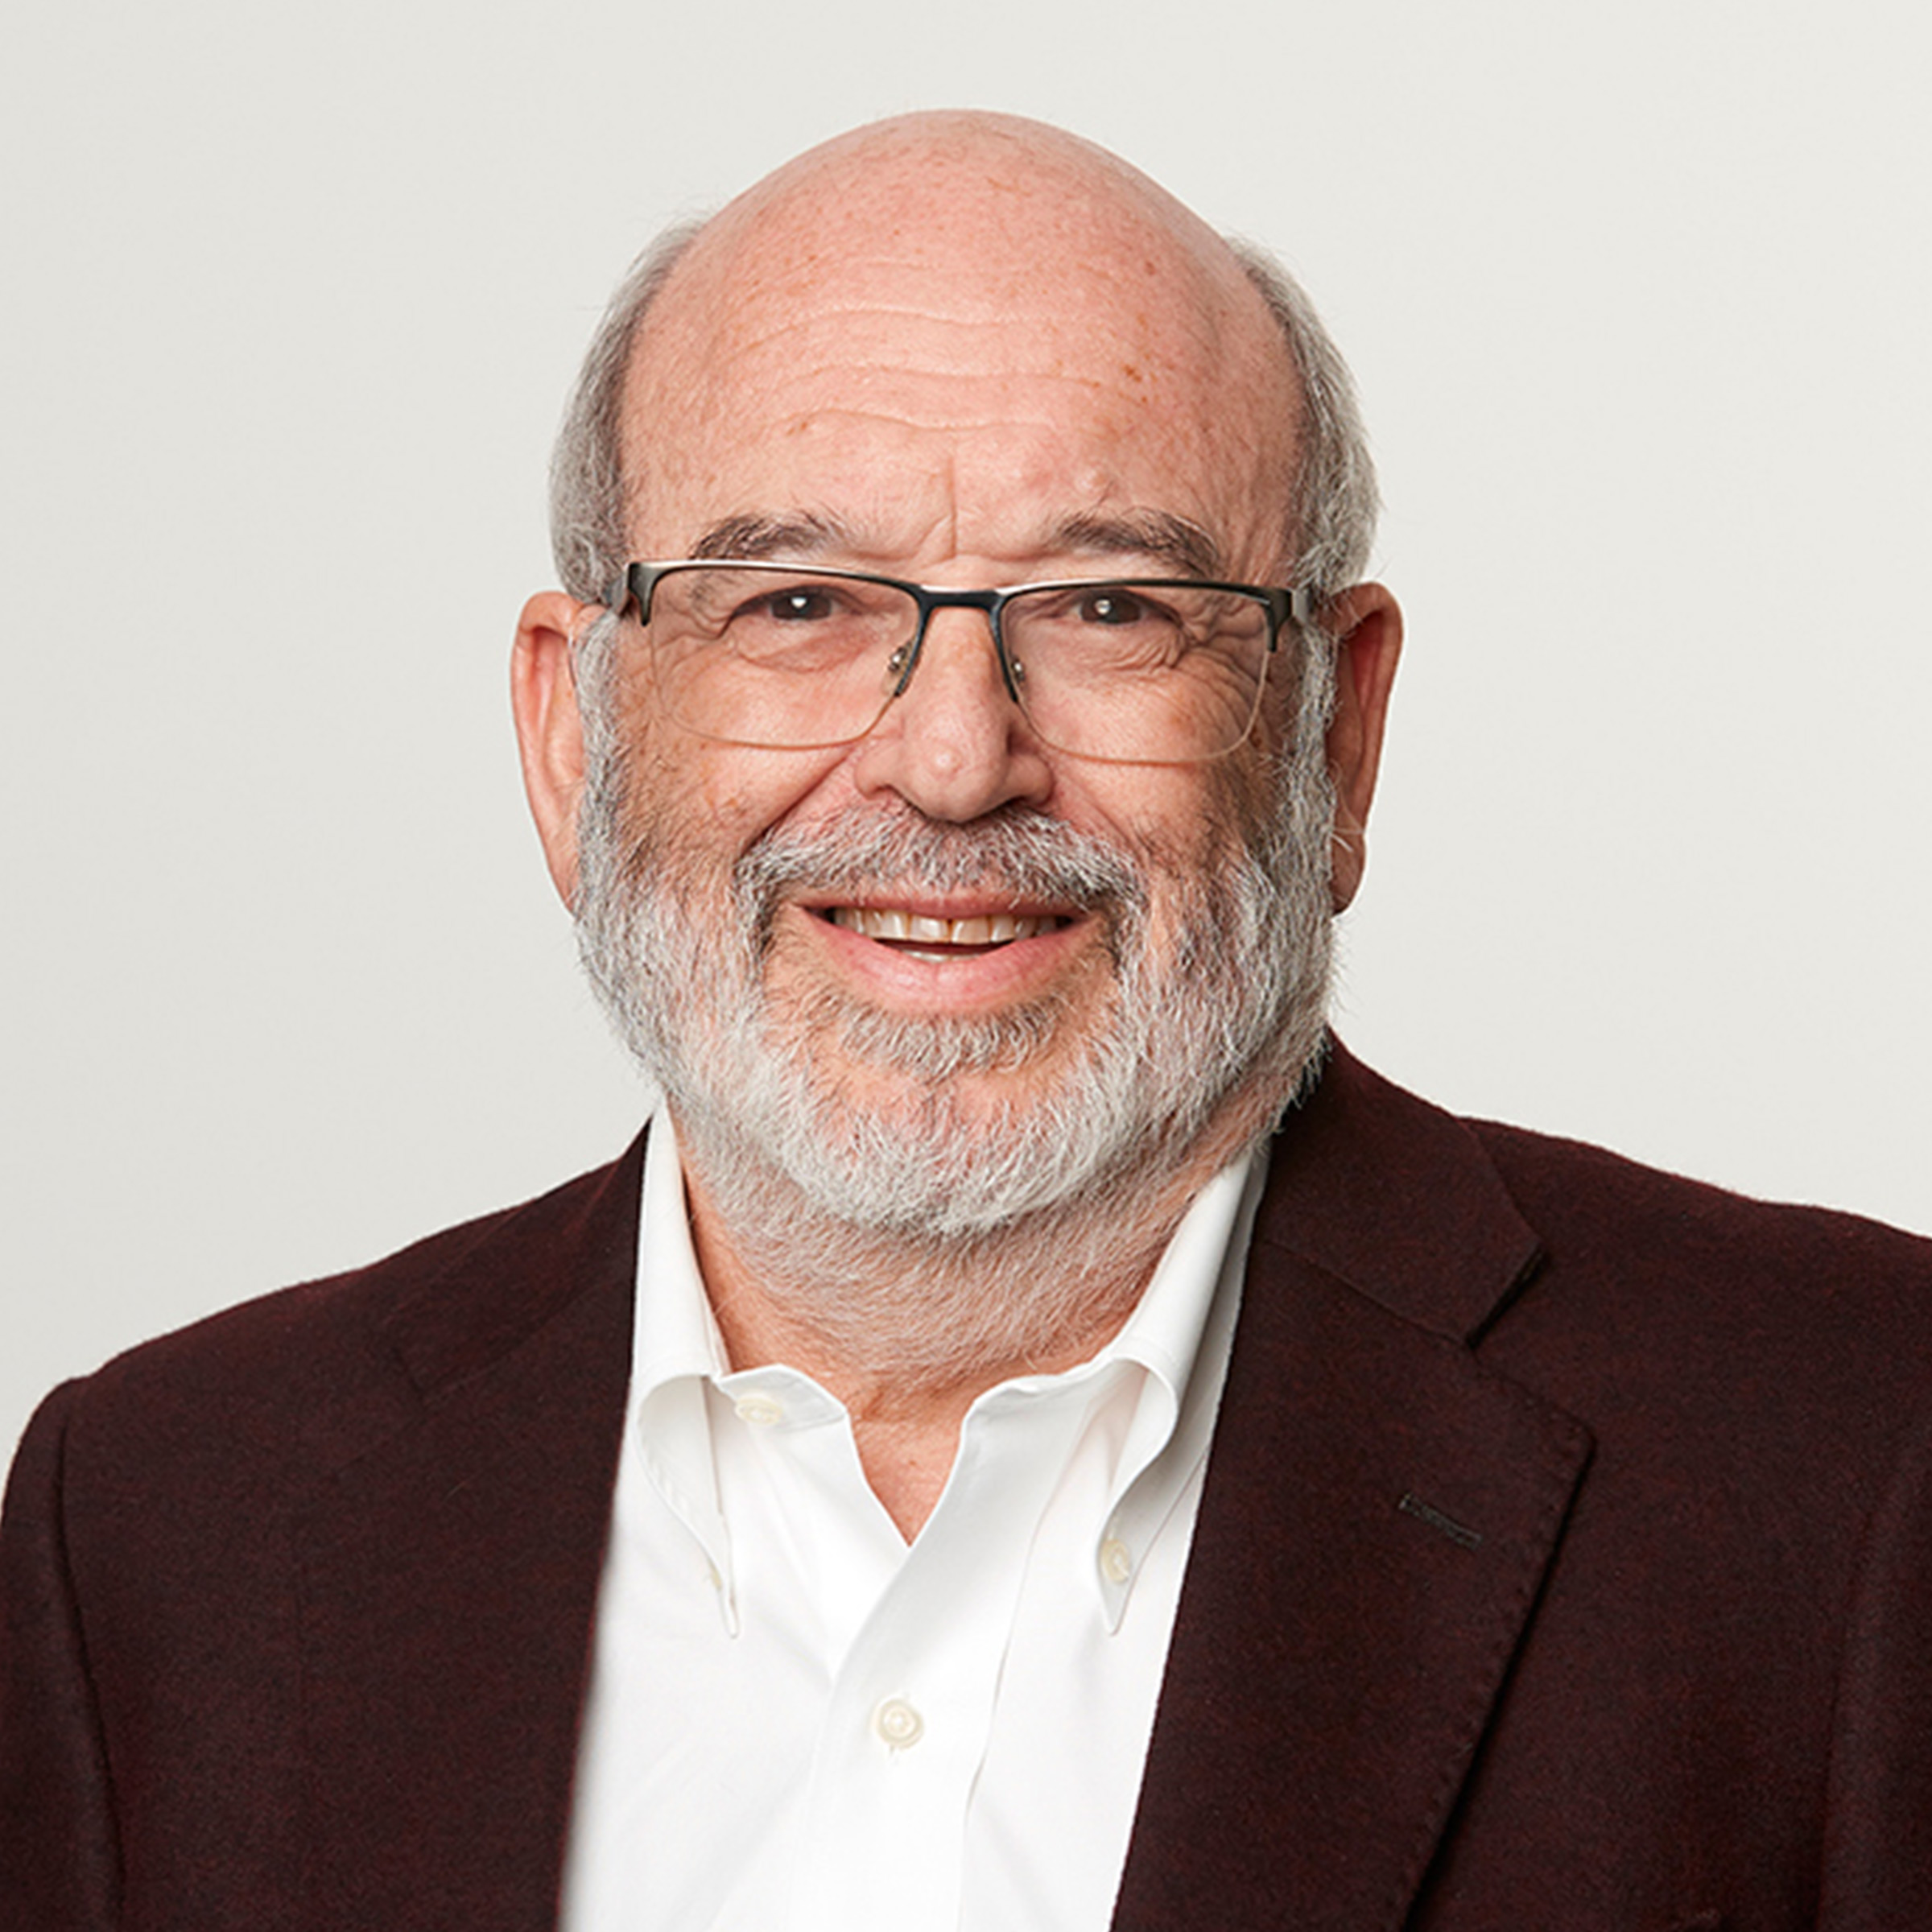 A picture of Peter Gluckman